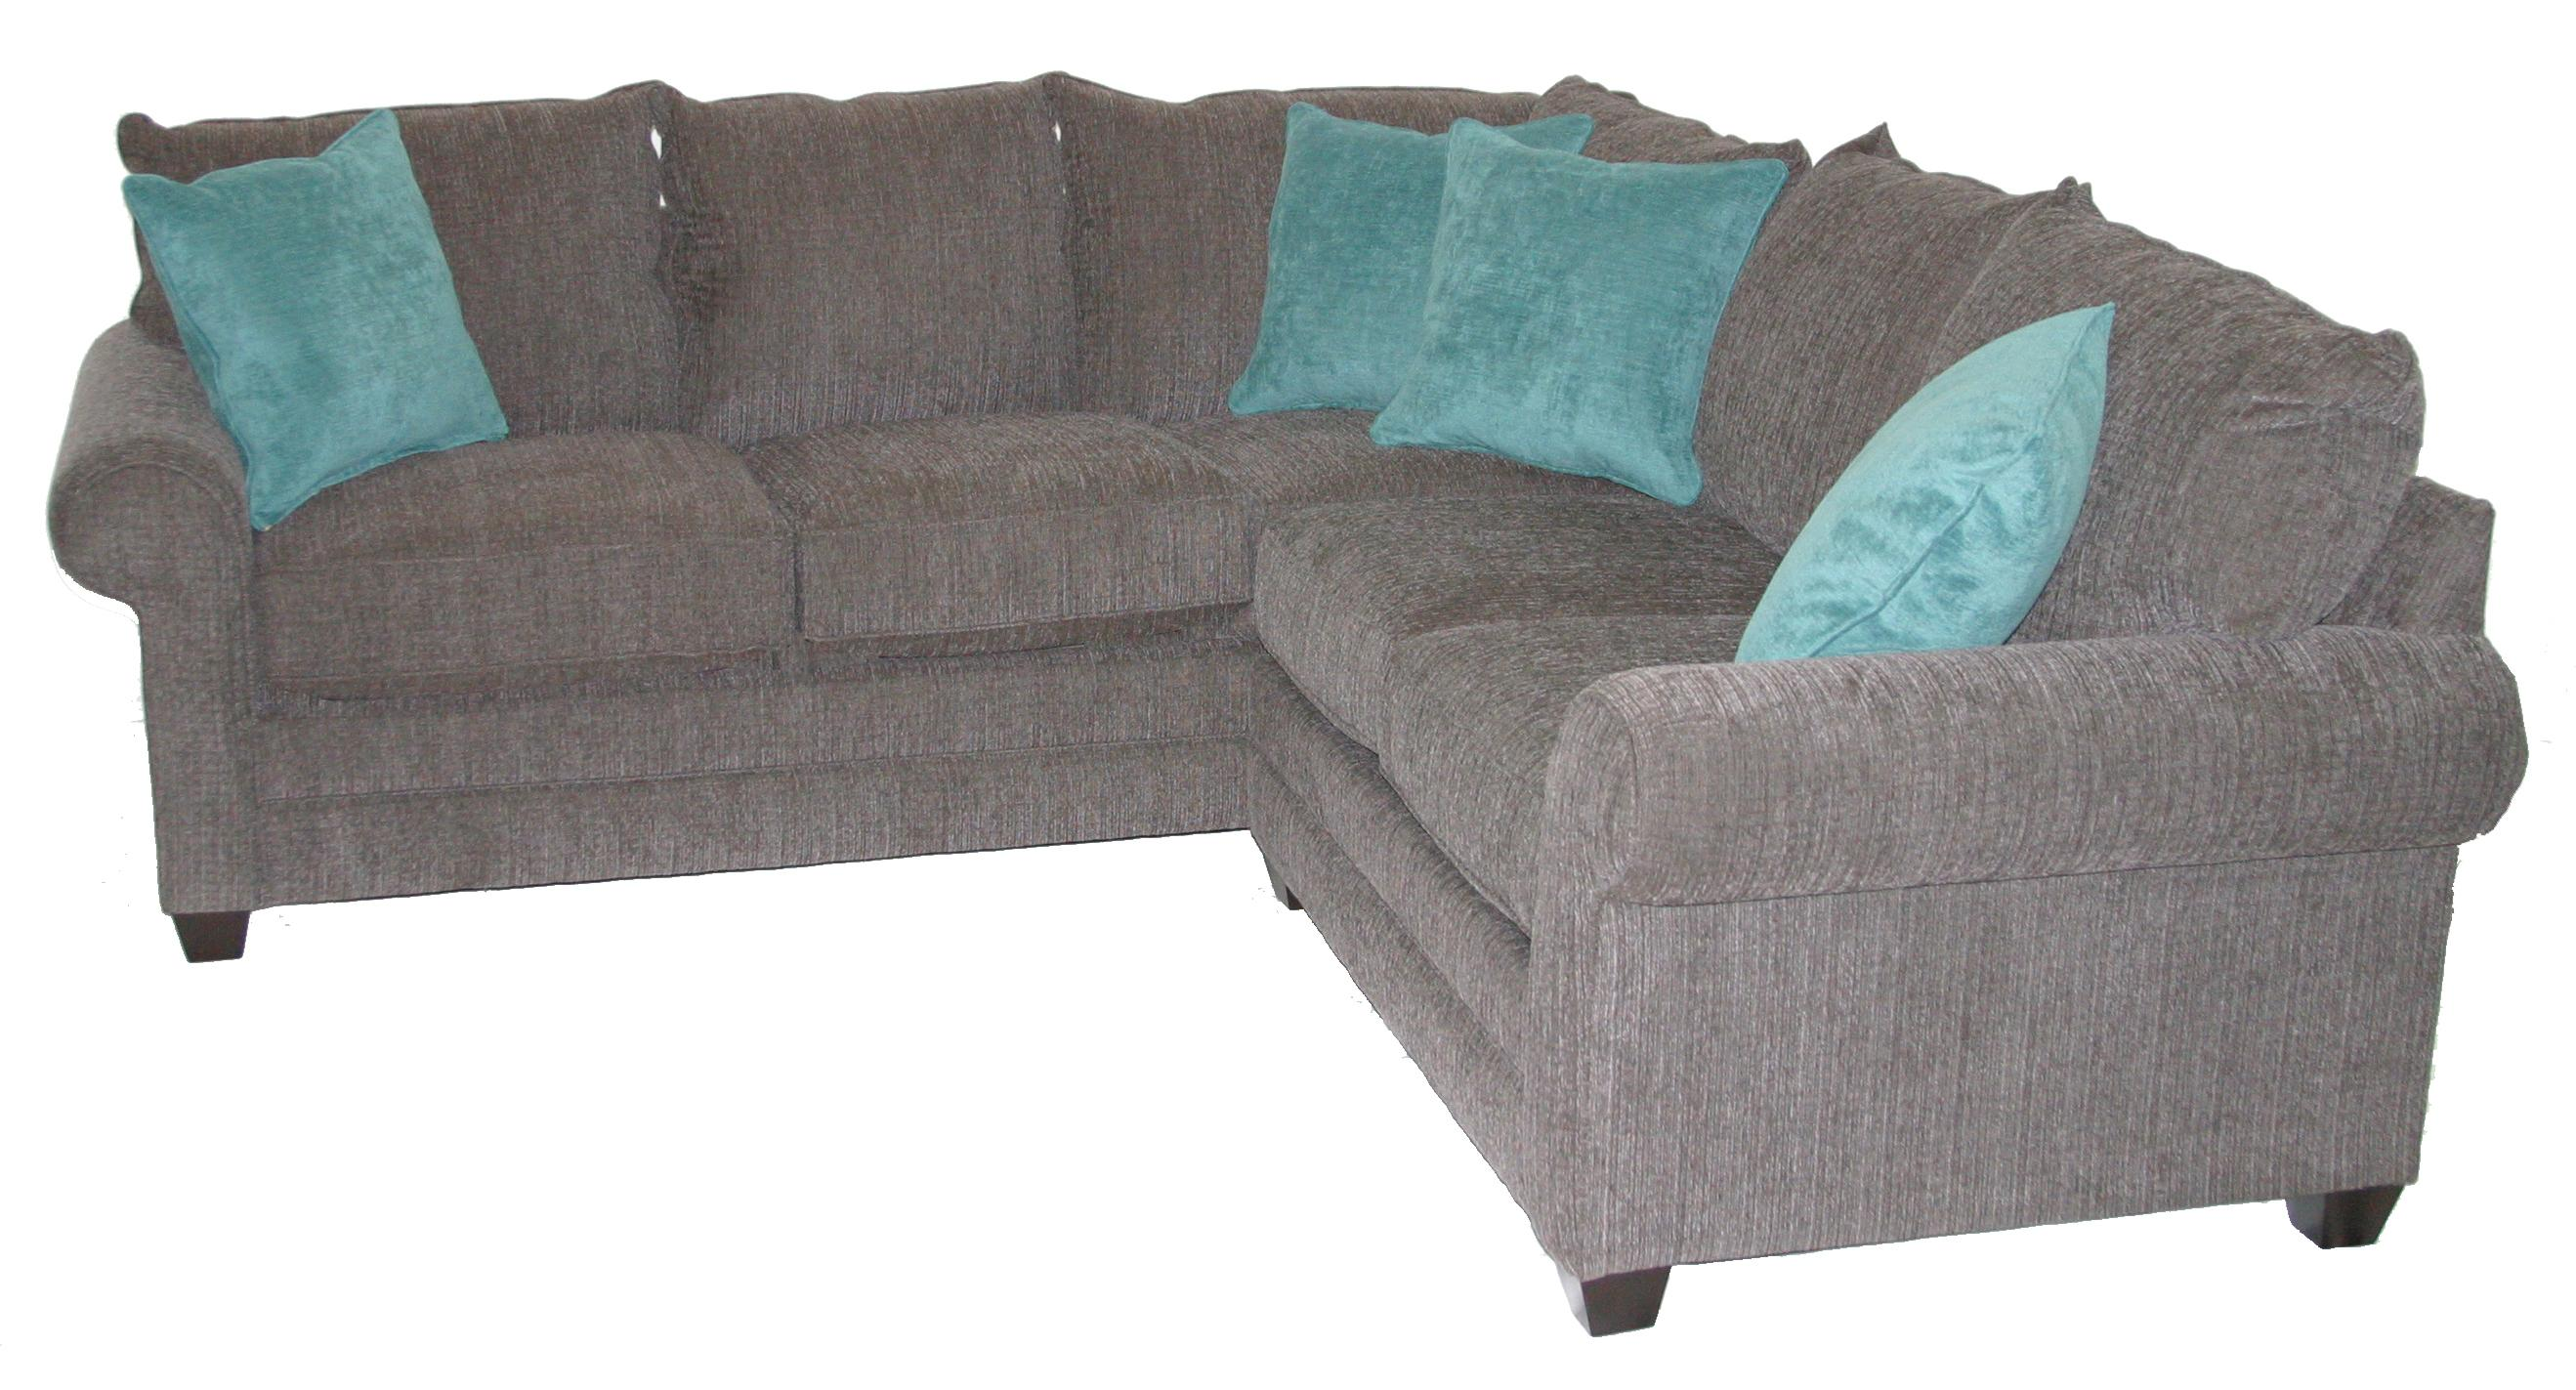 Bassett Alex 3989 Casual 2 Piece Sectional Sofa with Rolled Arms